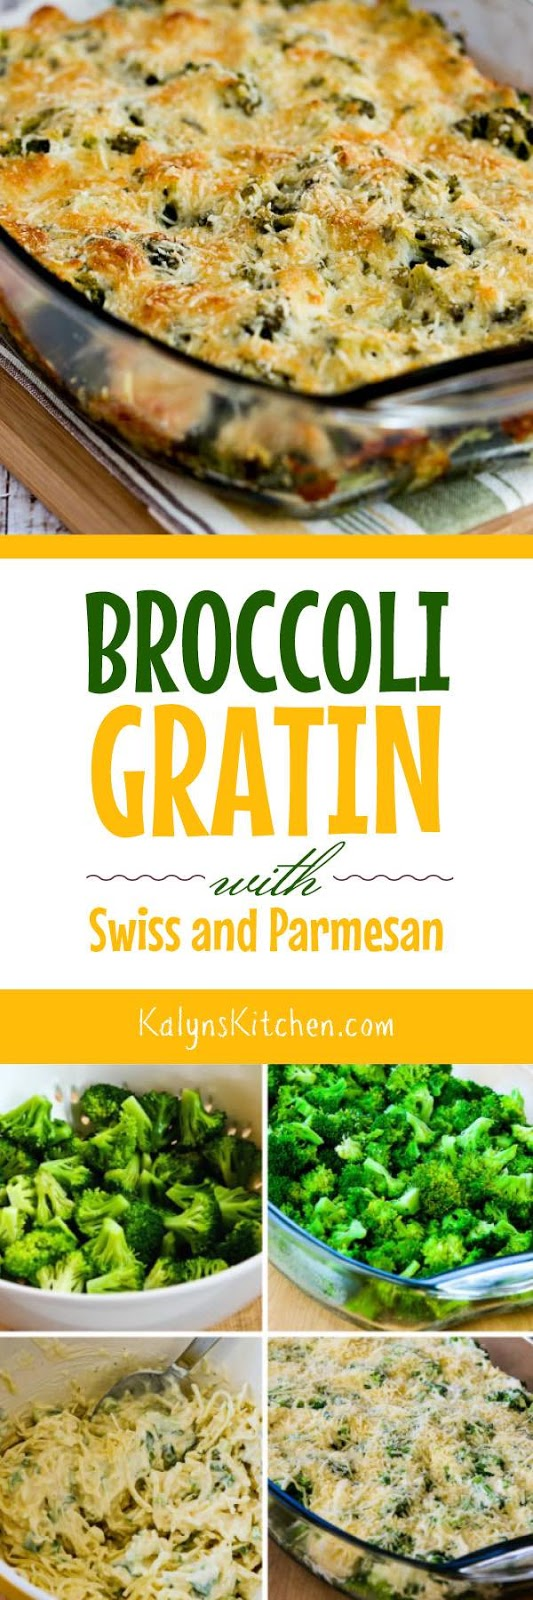 Broccoli Gratin with Swiss and Parmesan - Kalyn's Kitchen